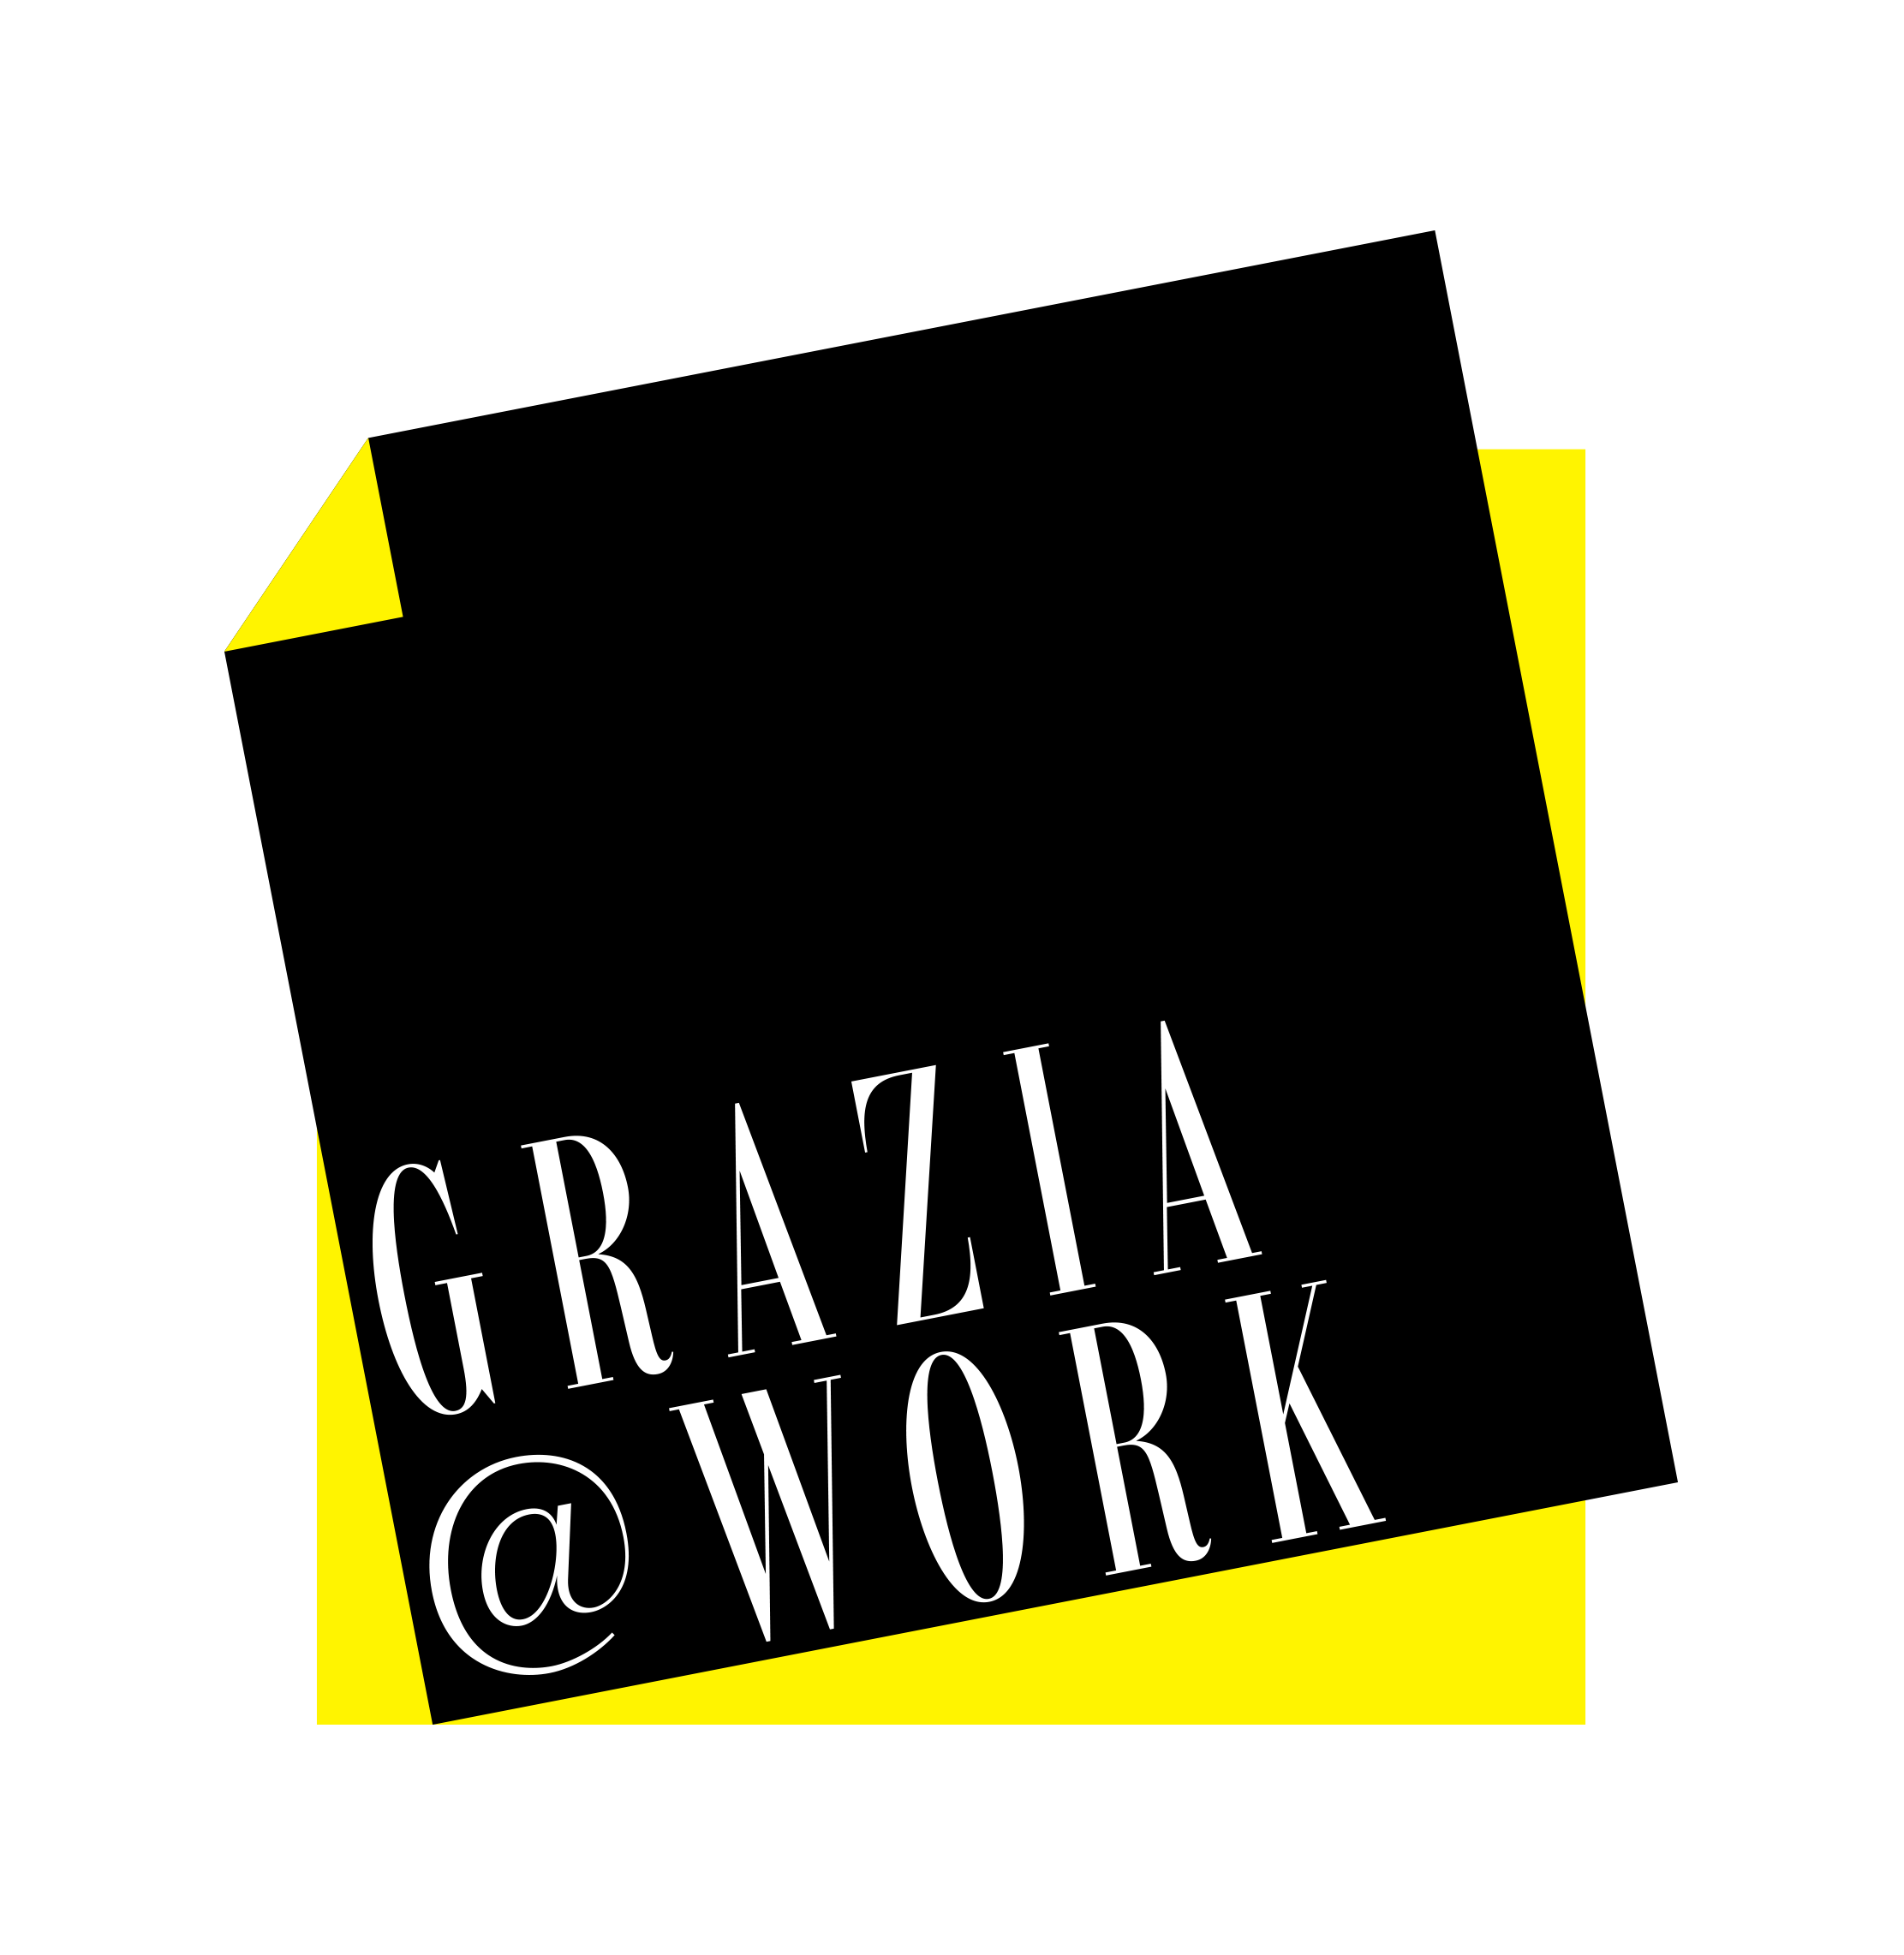 Grazia at work logo.png